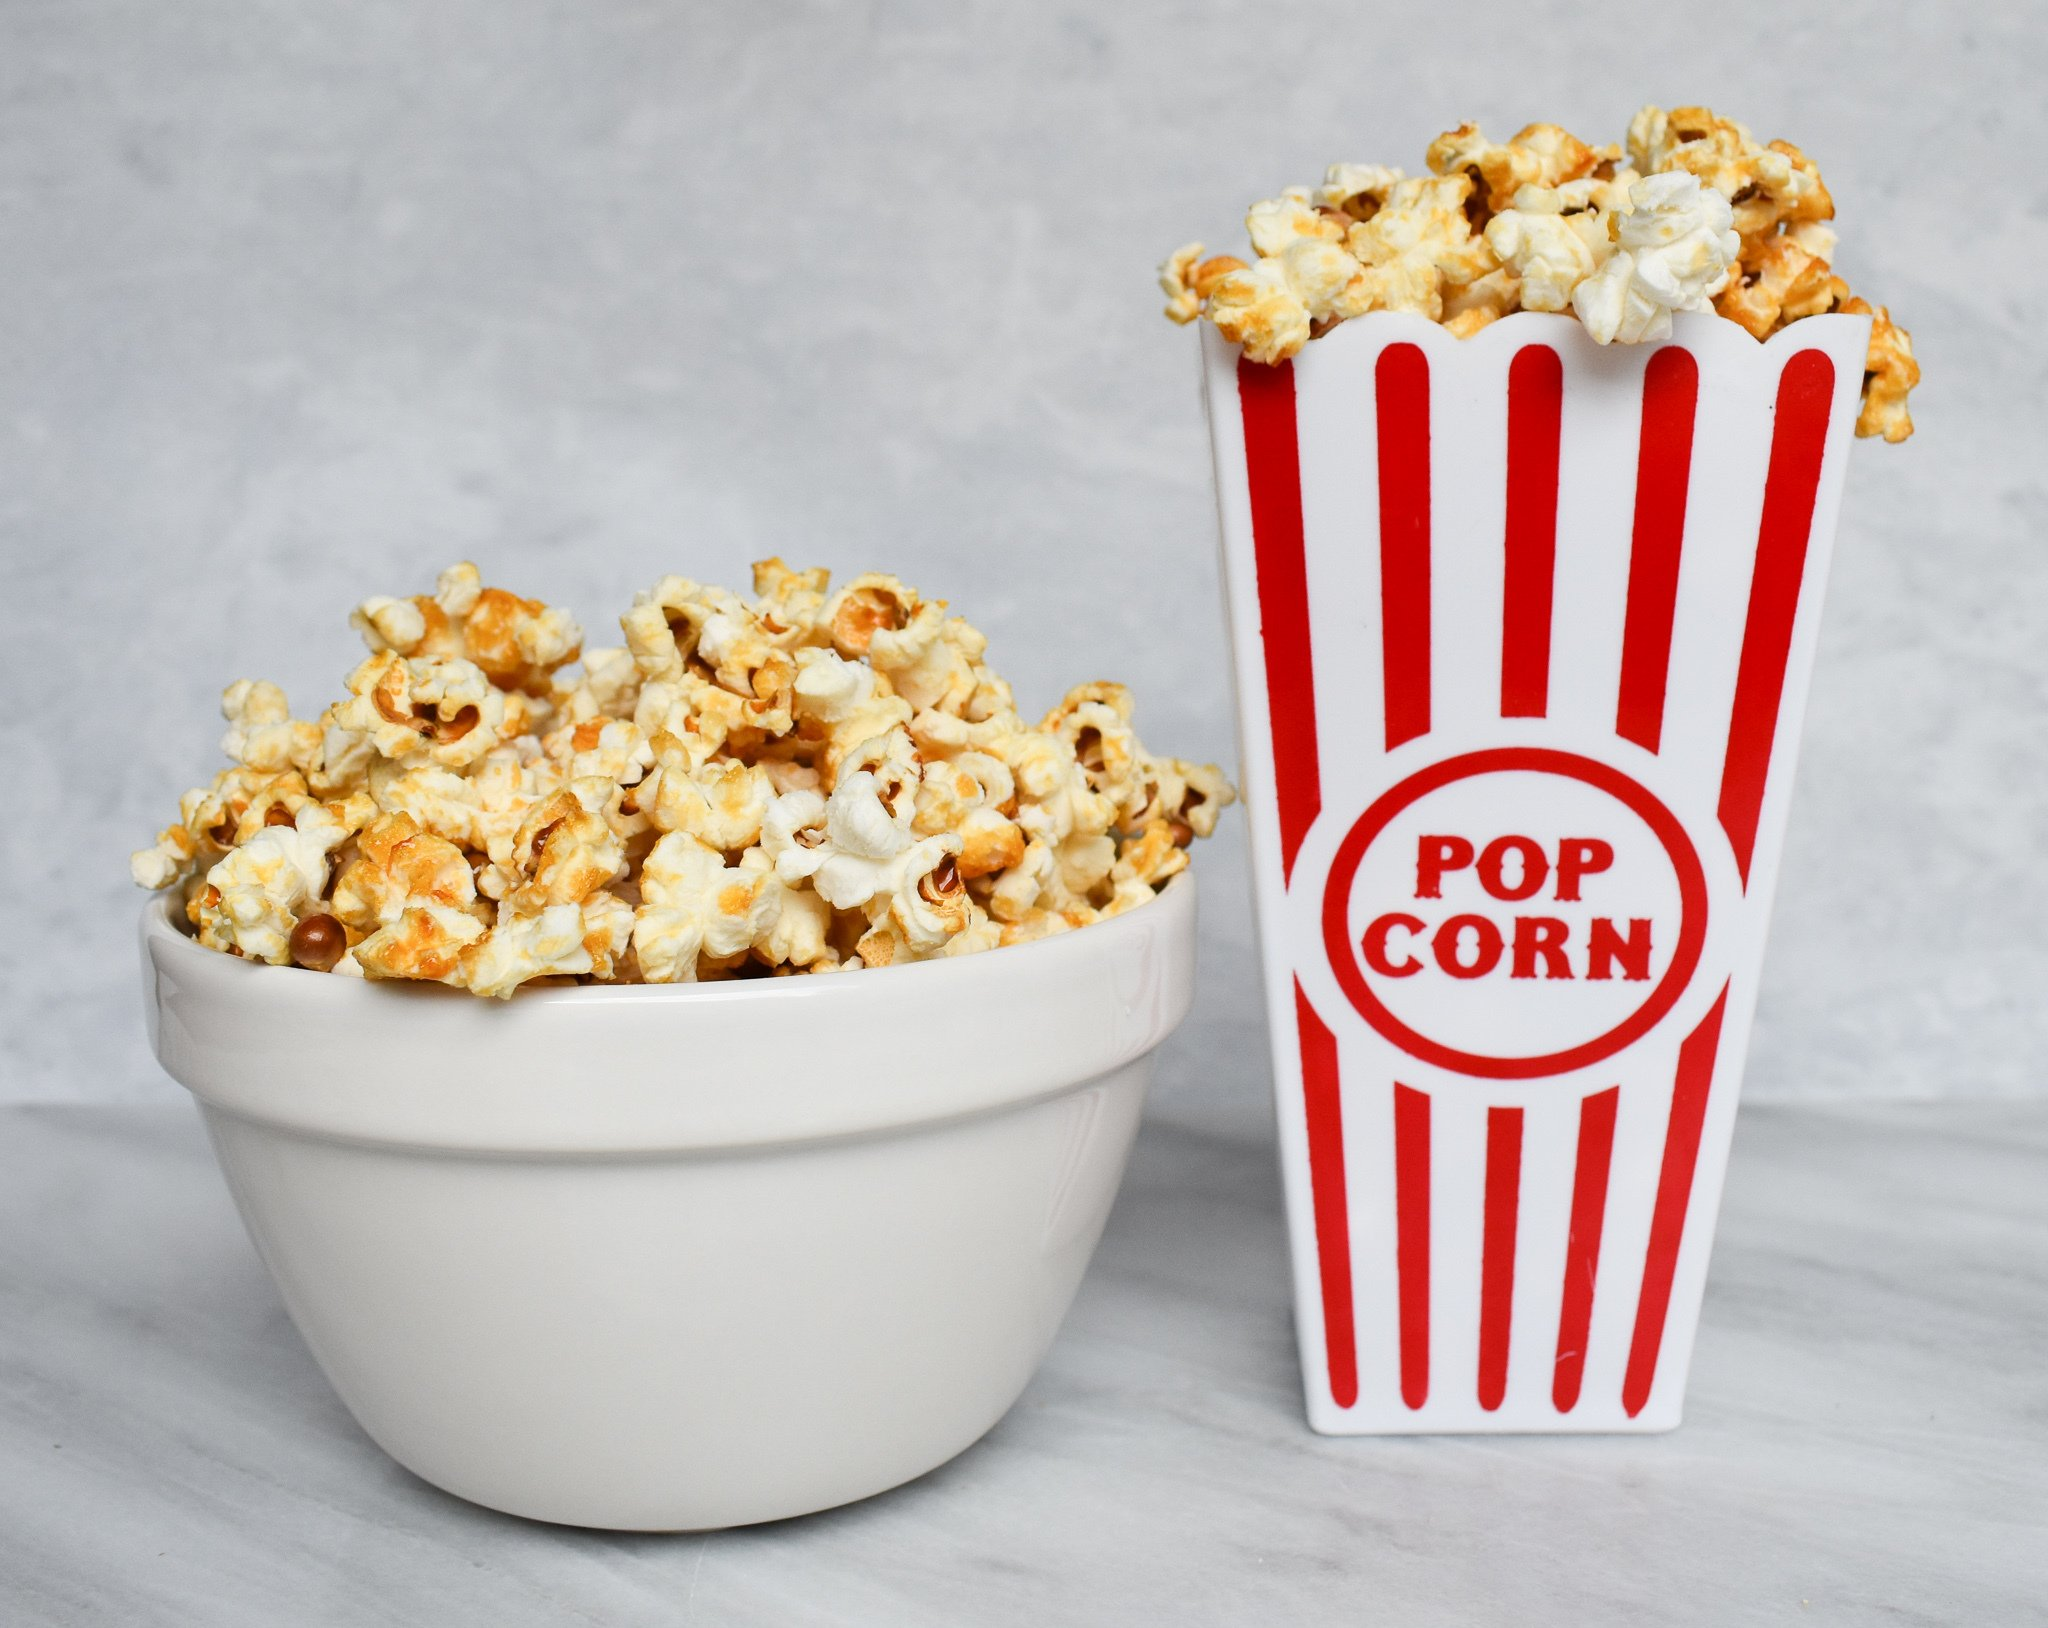 Popcorn Packaging: A Viable Alternative to Polystyrene